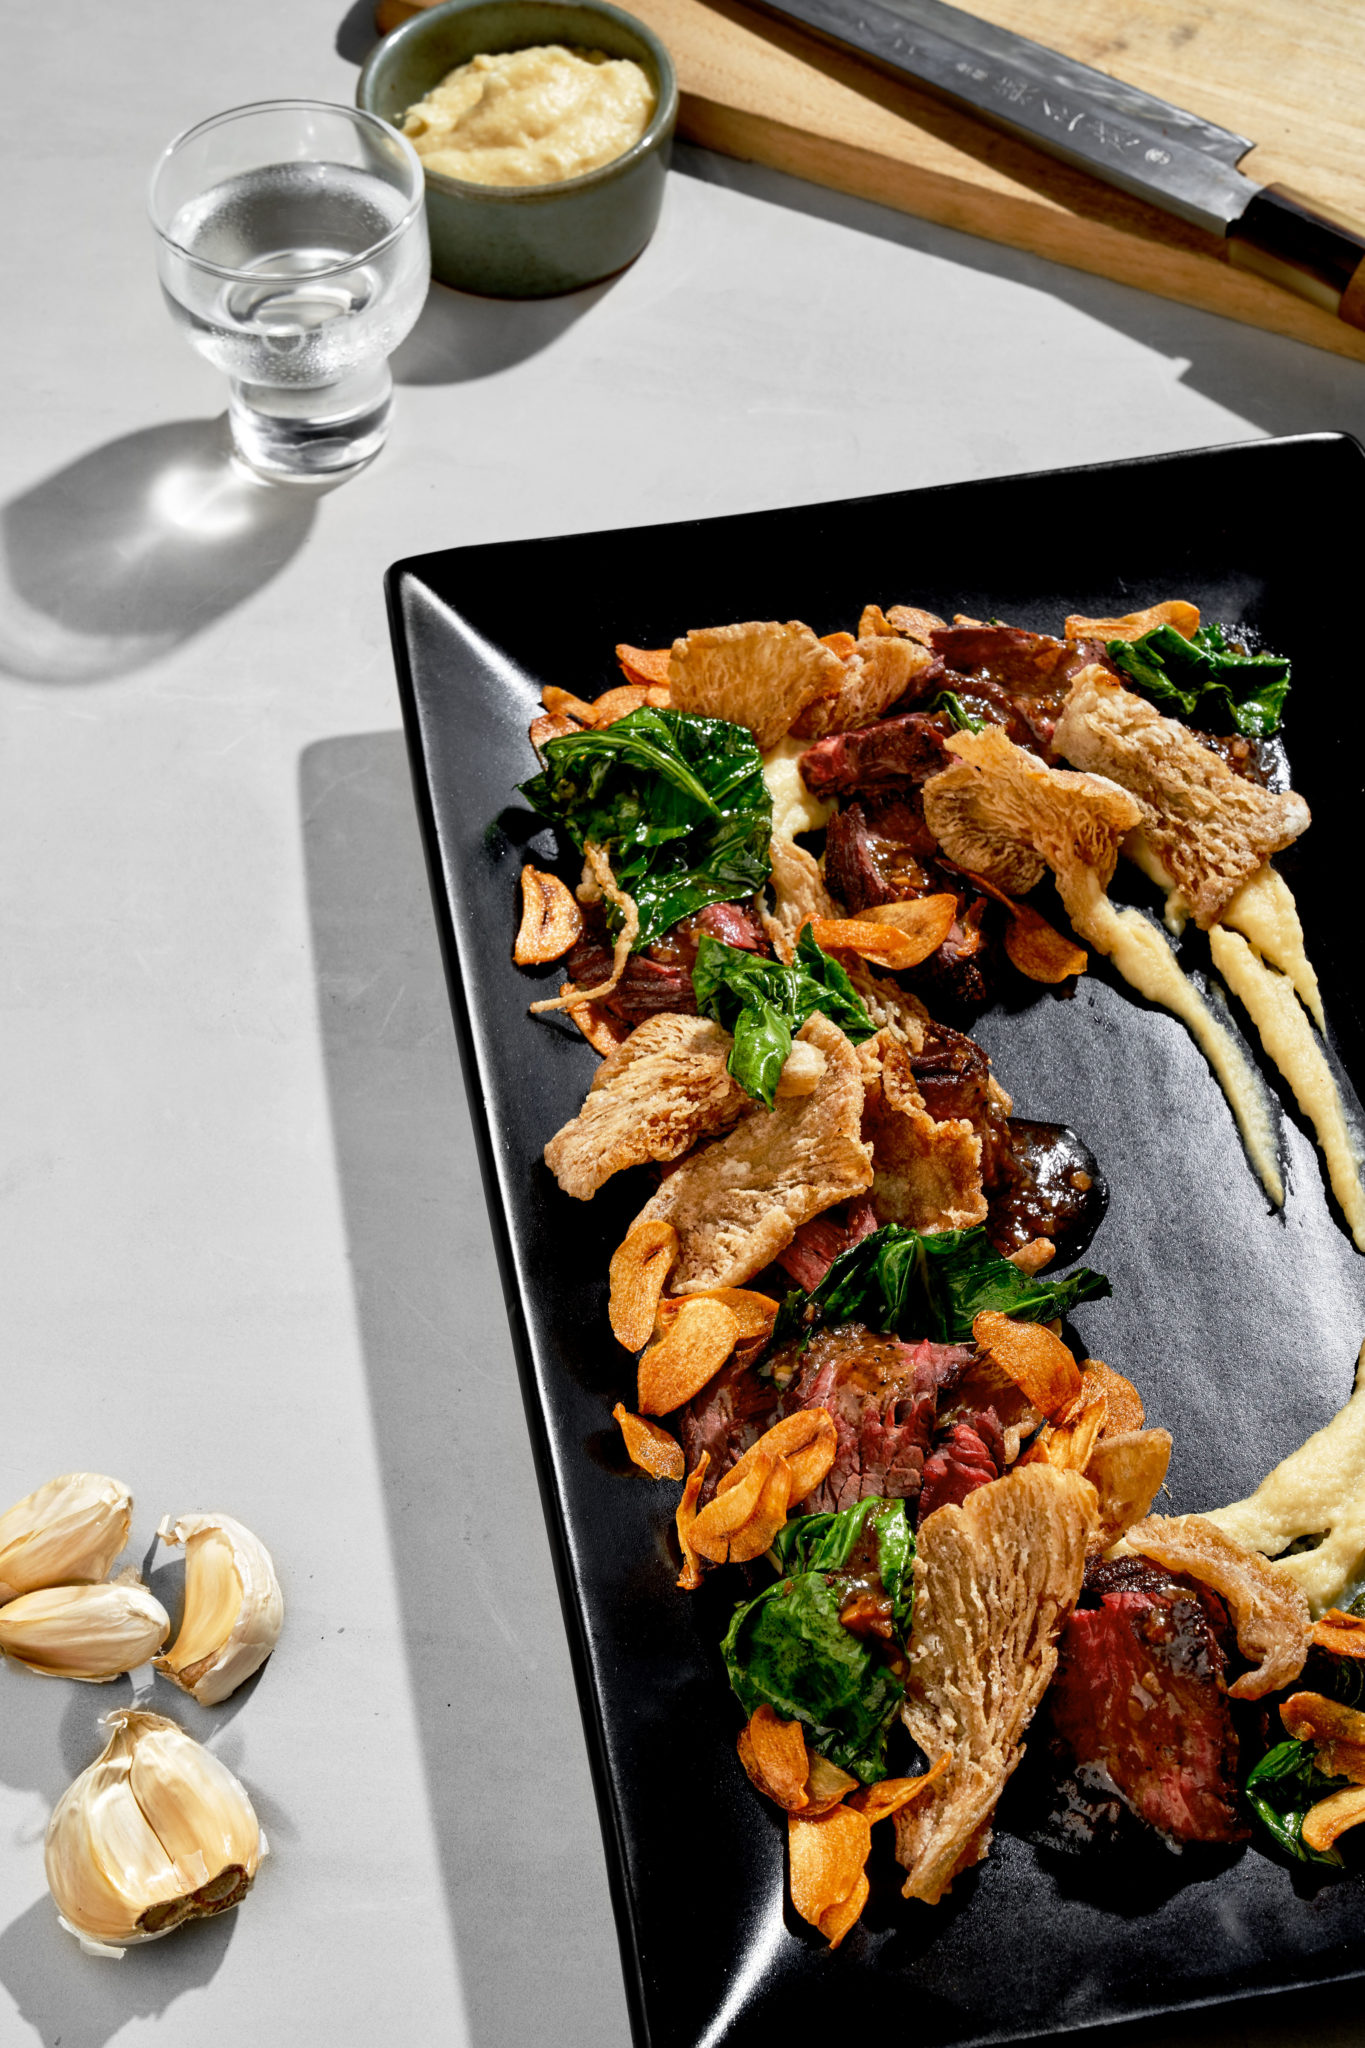 Ooma celebrates the arrival of new dishes to the menu featuring Japanese classics that have been given the Ooma touch